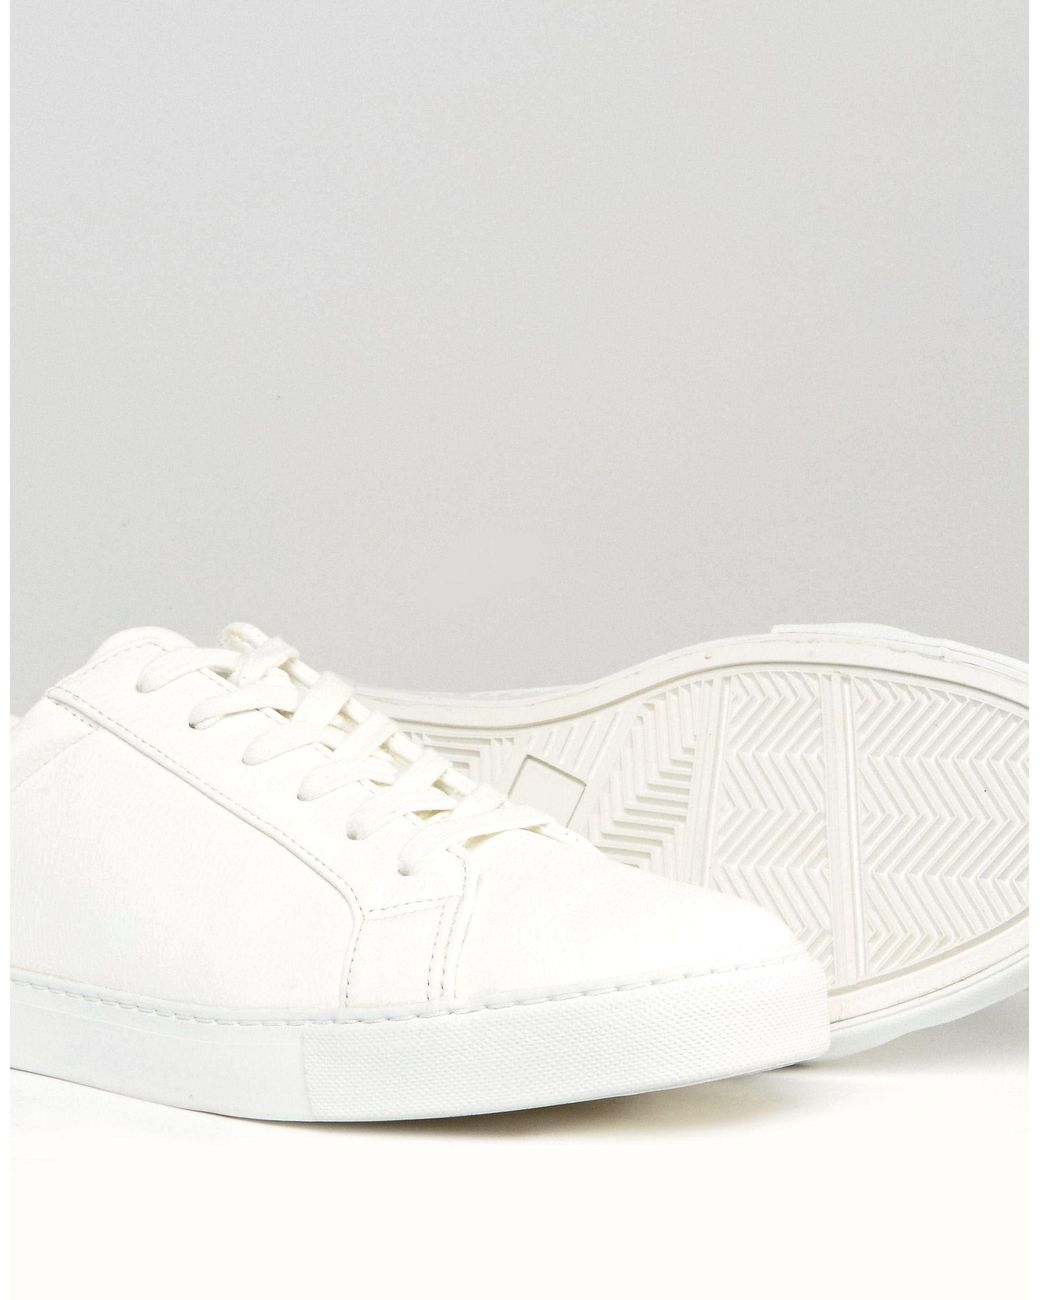 ASOS Trainers in White for Men - Lyst